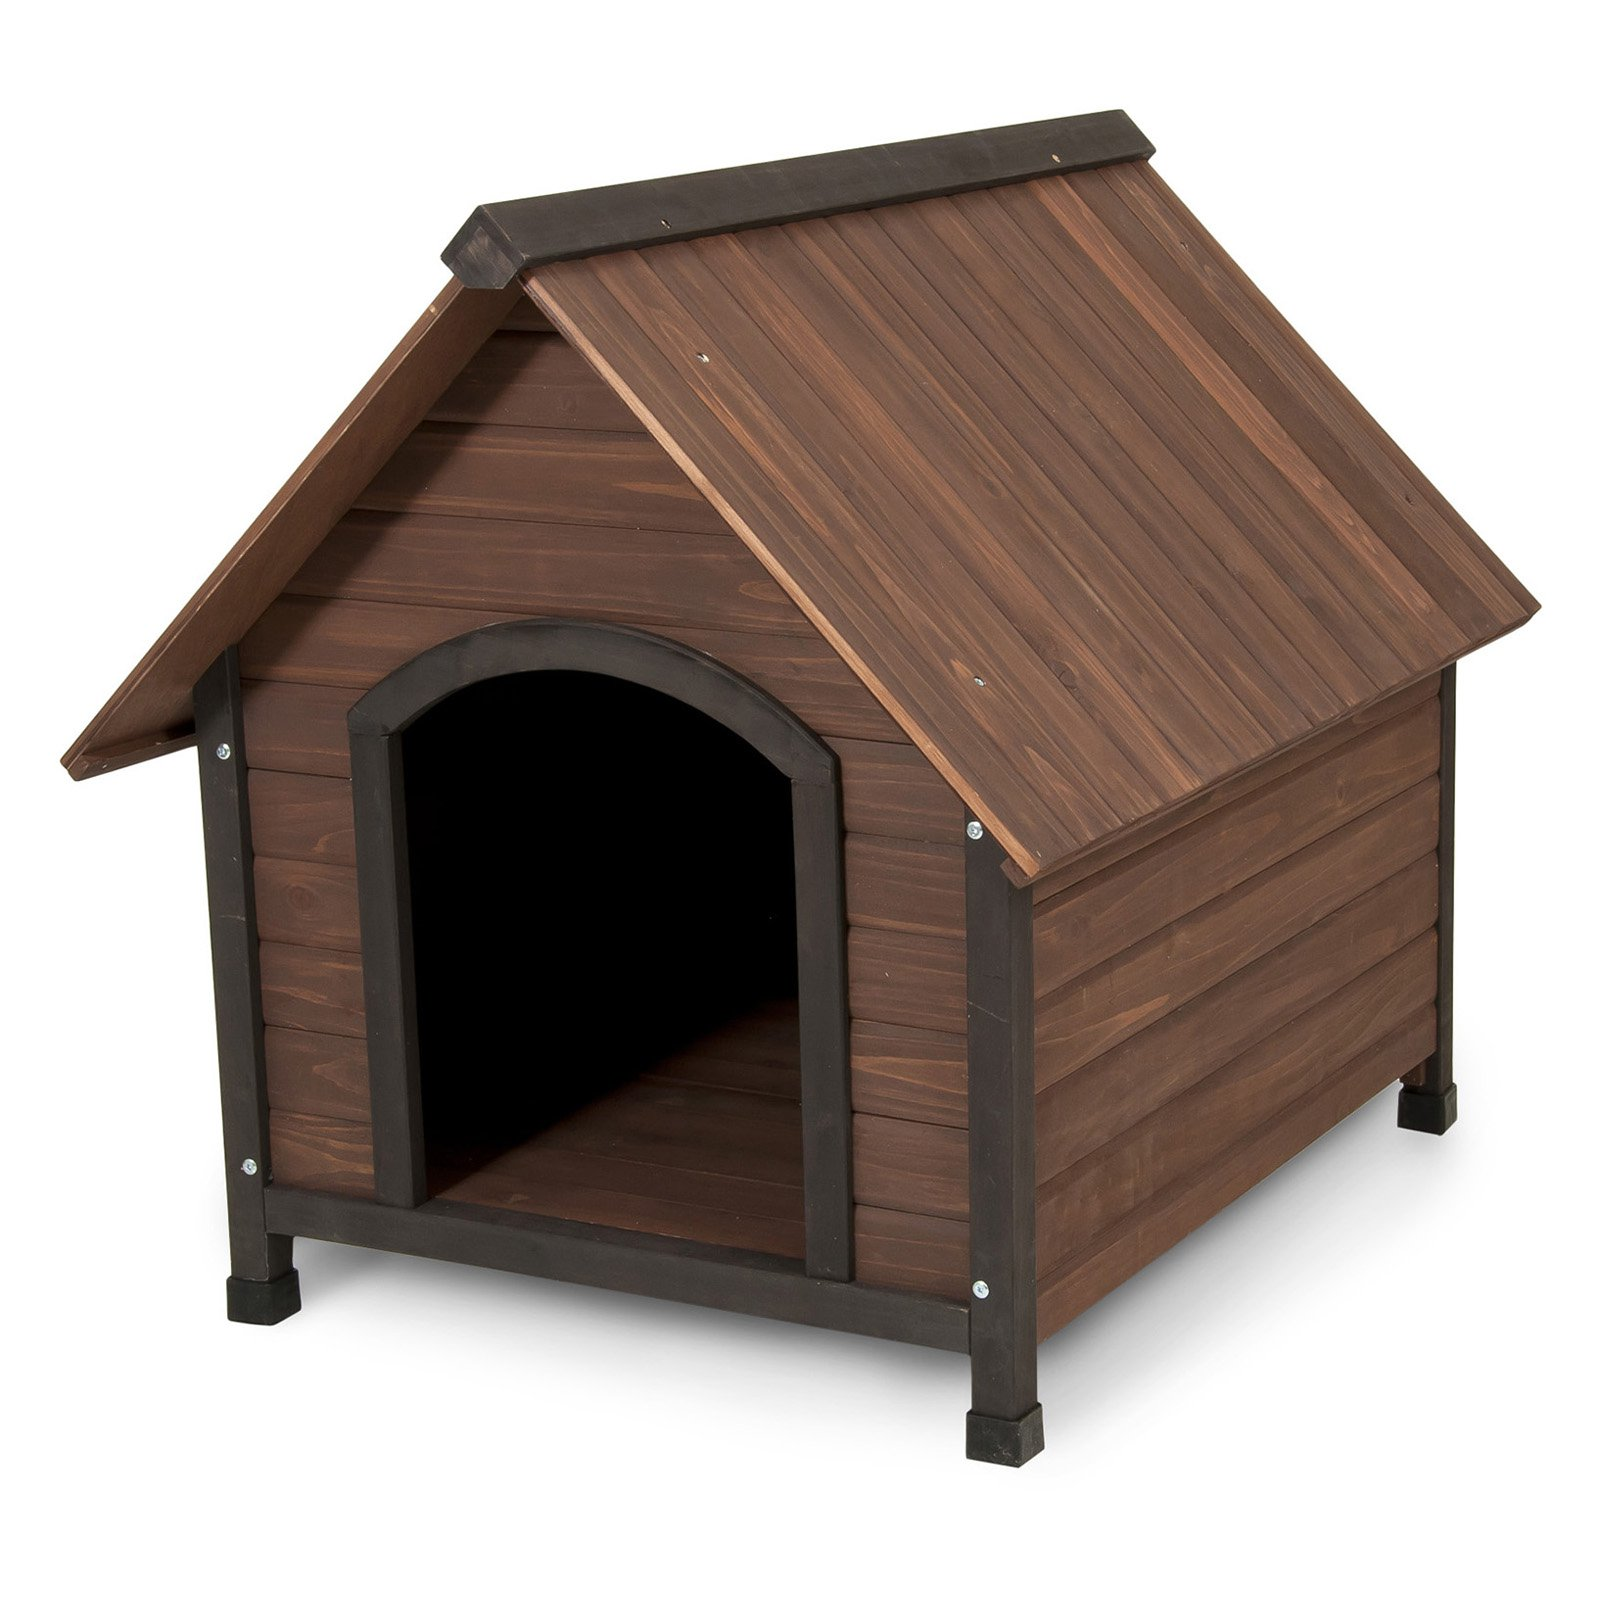 "Petmate Doskocil Co Inc 25038 34.32"" X 38.52"" X 31.8"" Ruff Hauz Offset Entry Dog House by Doskocil"